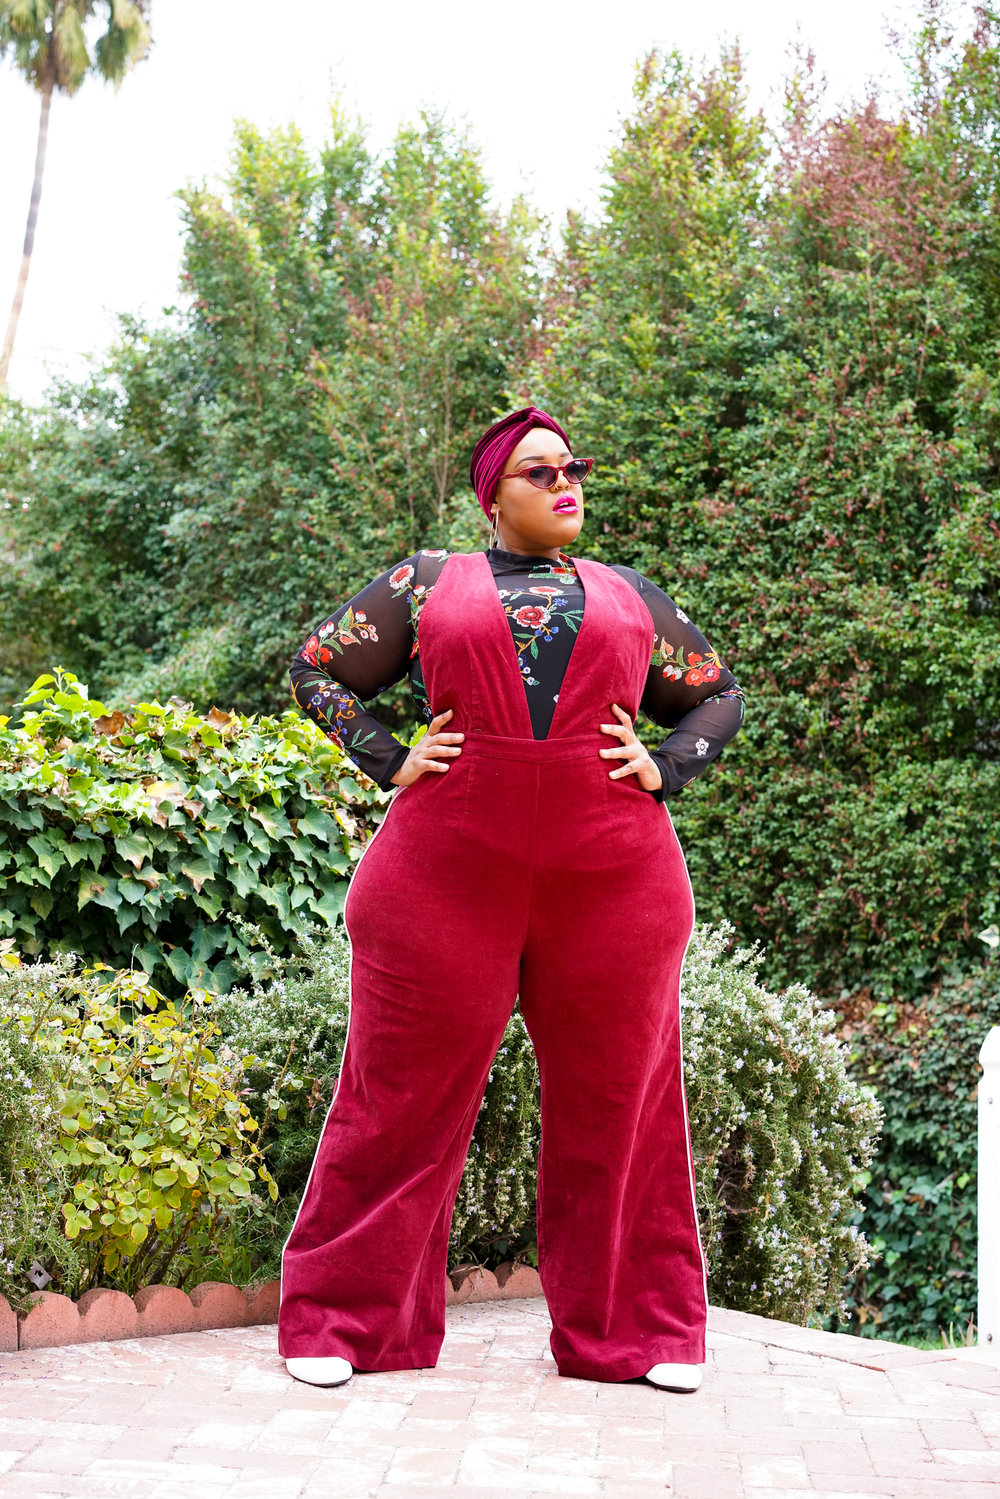 Leah-Vernon-Plus-Size-Body-Positive-Muslim-Girl-Model-Detroit-London-Blogger-Instagram-2.jpg